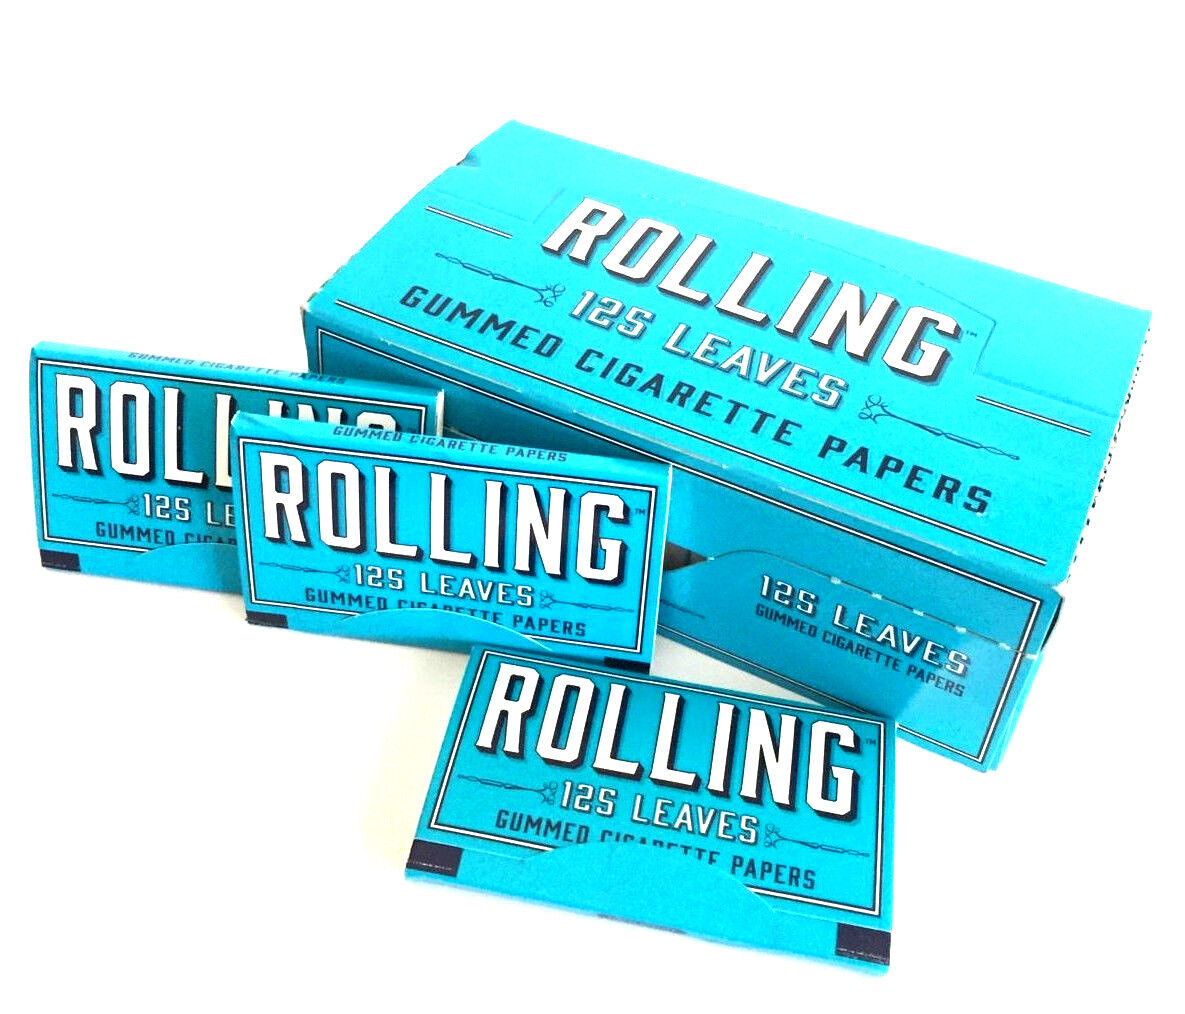 Rolling papers Gummed 24 Packs Box Booklets RYO Tobacco USA New Wholesale